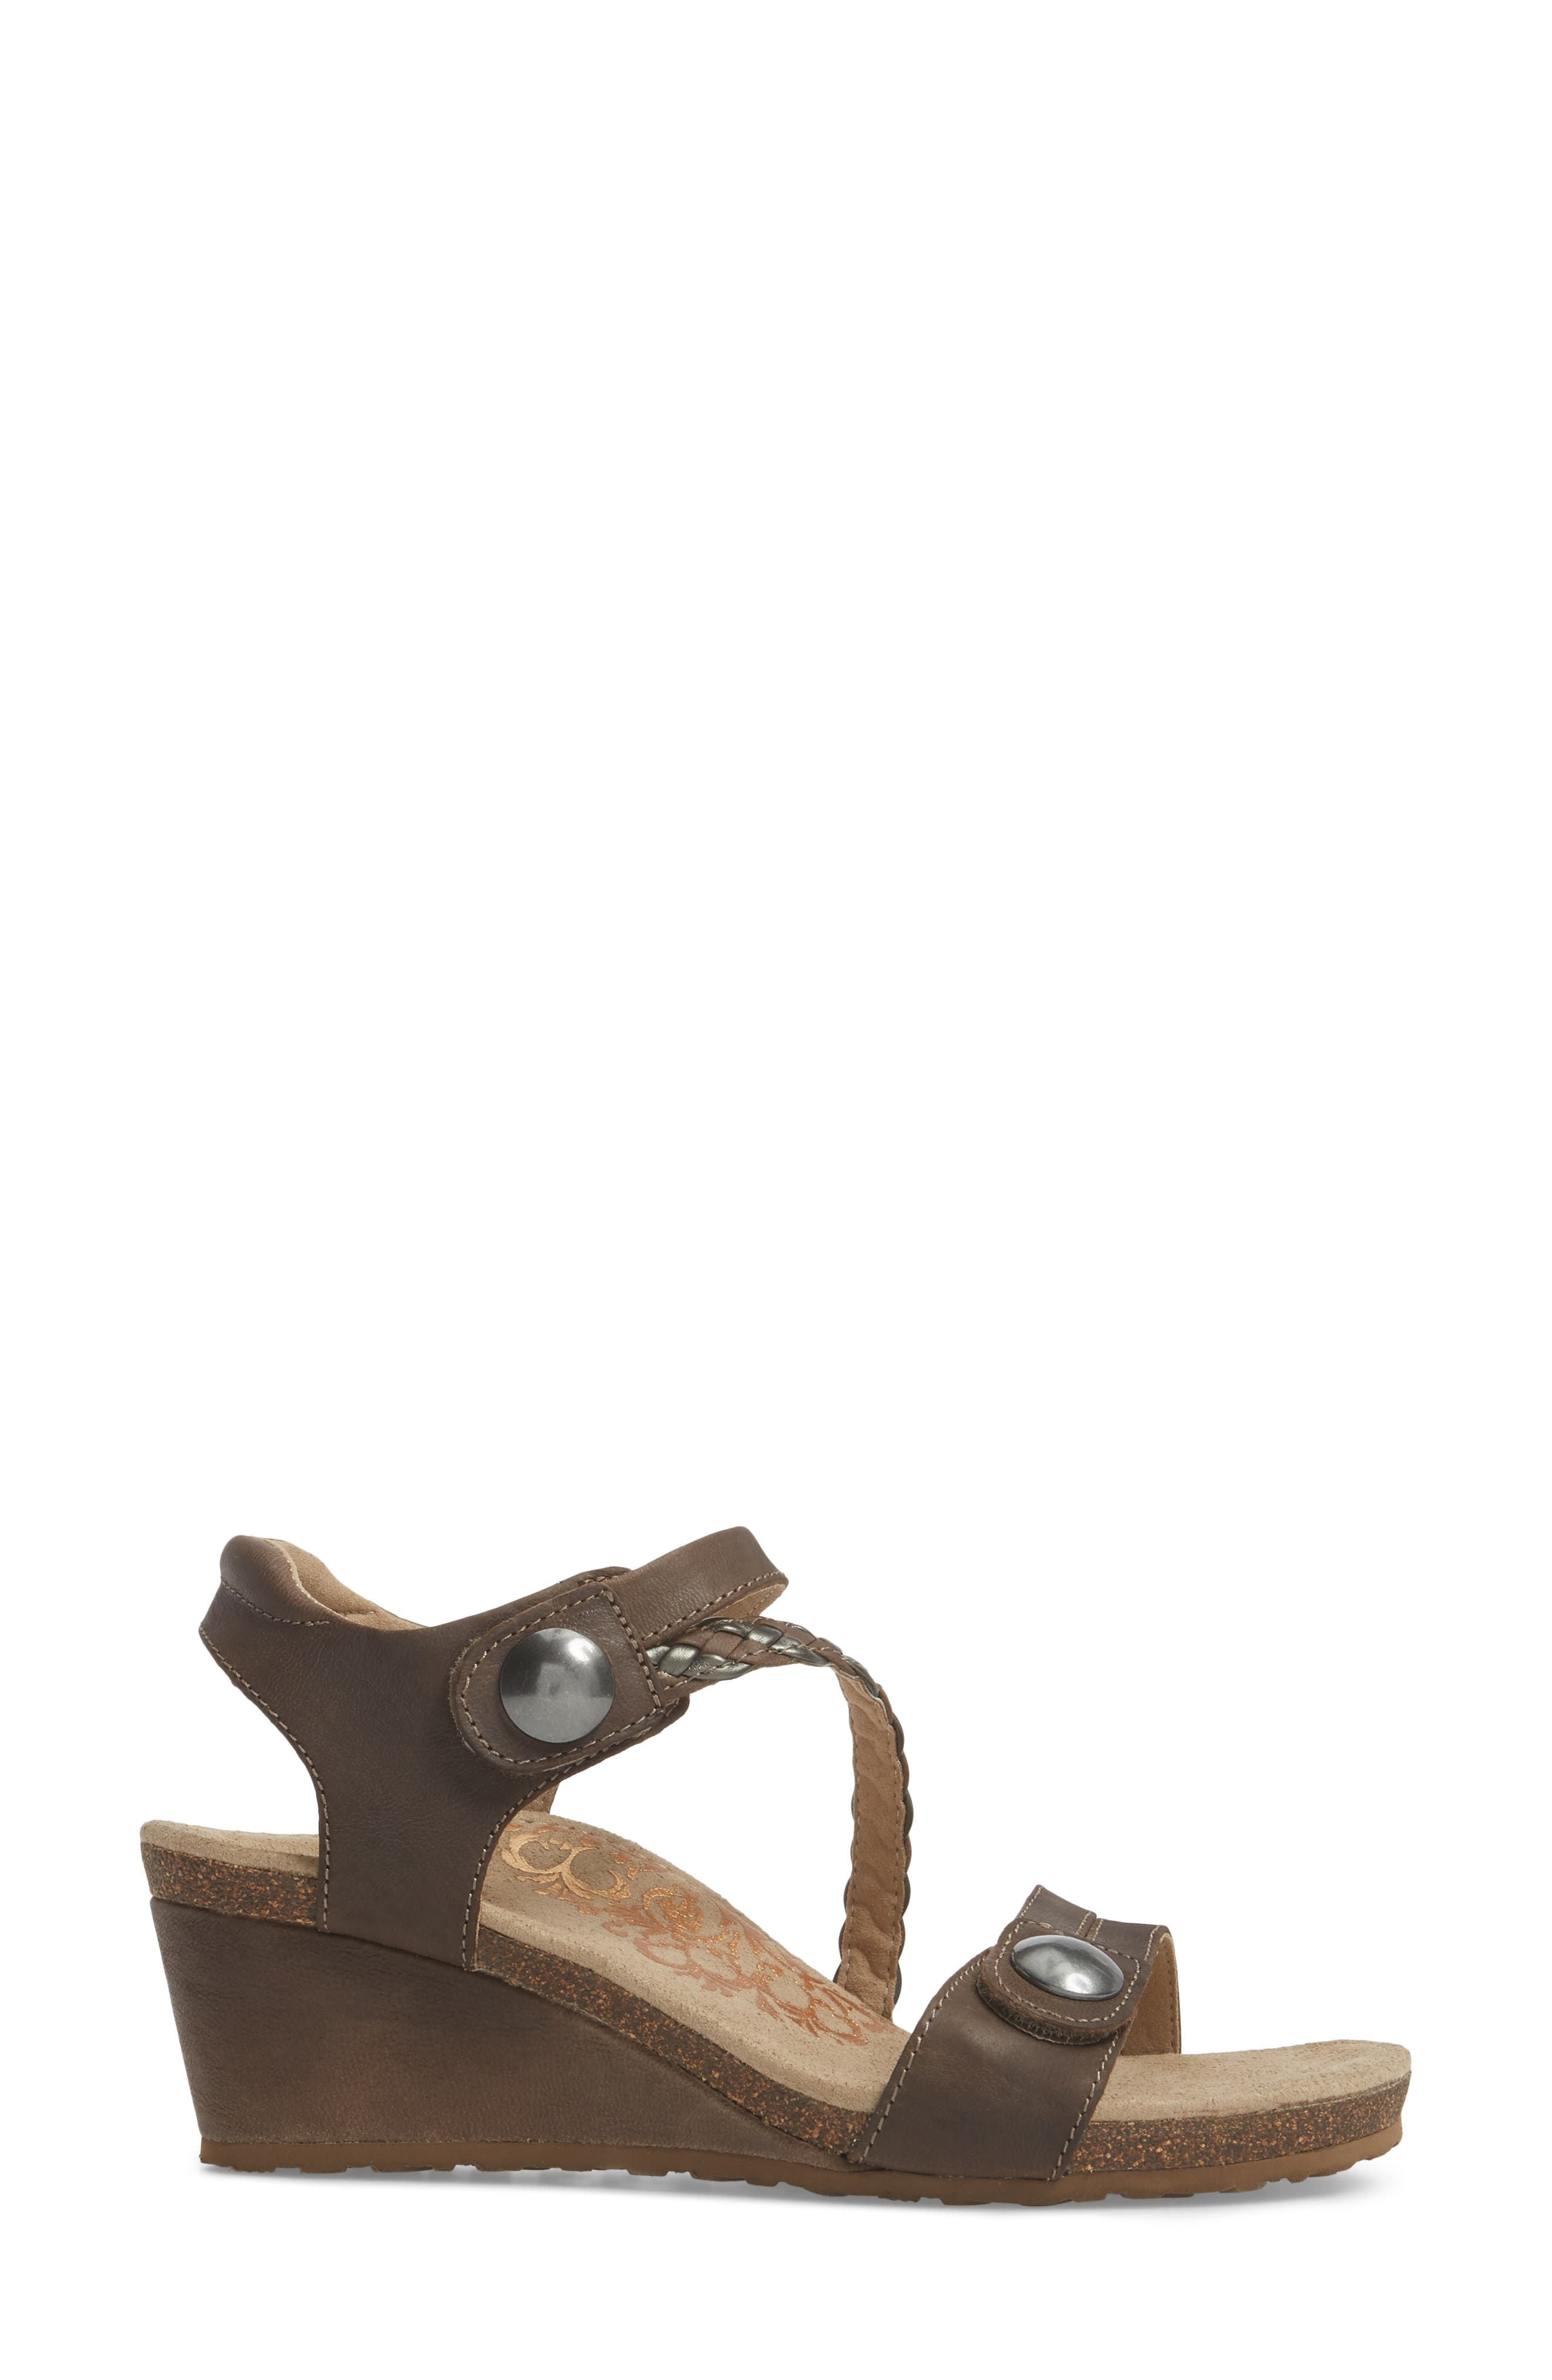 'Naya' Wedge Sandal,                             Alternate thumbnail 3, color,                             STONE LEATHER